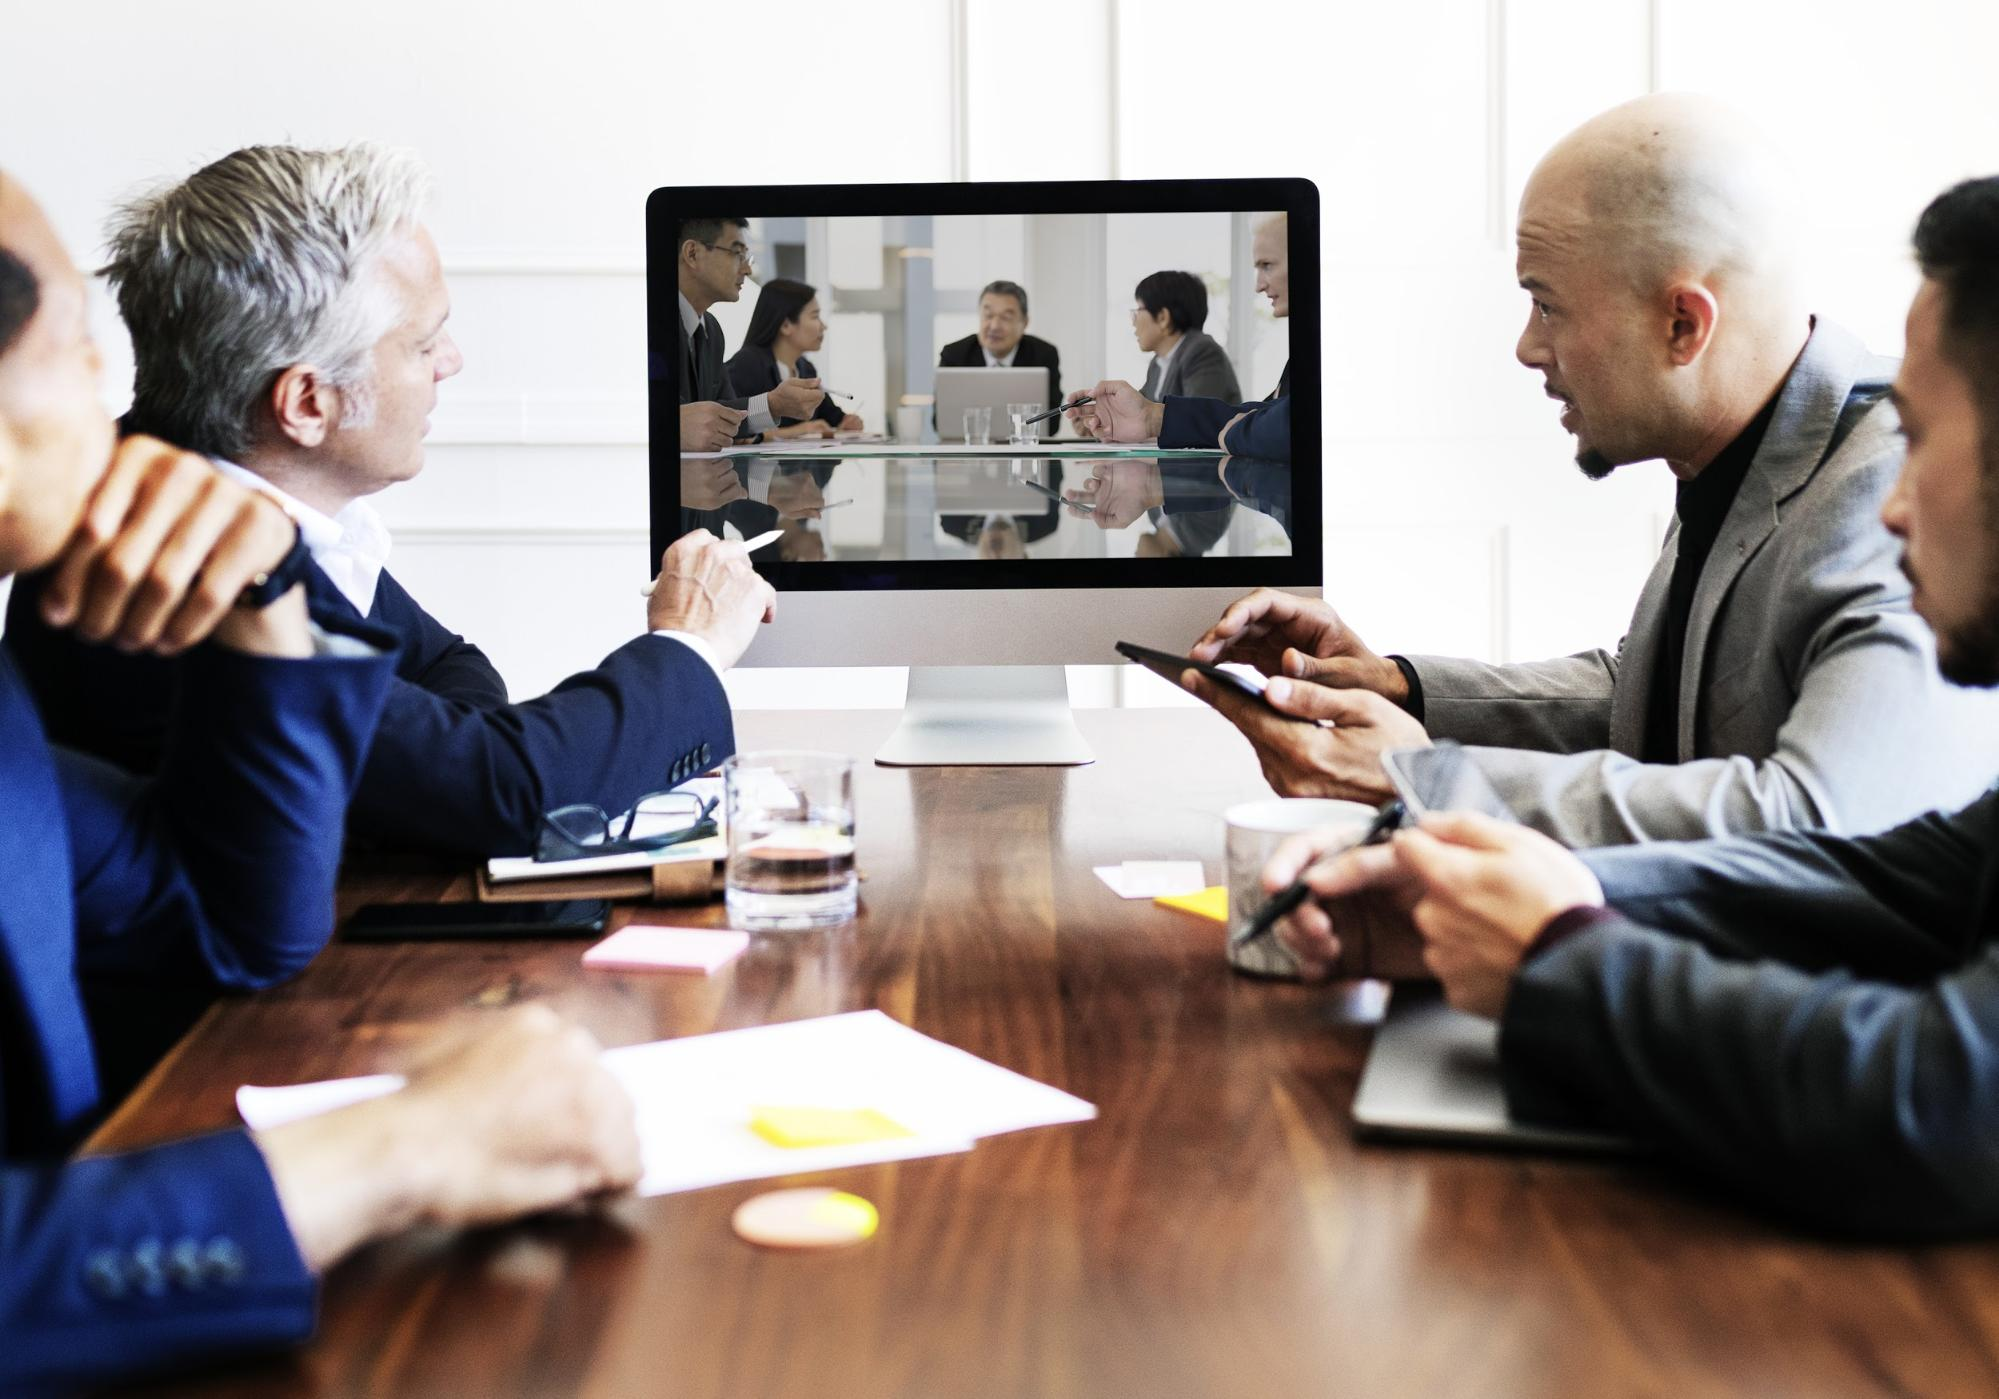 9 Tips to Make Online Meetings More Engaging